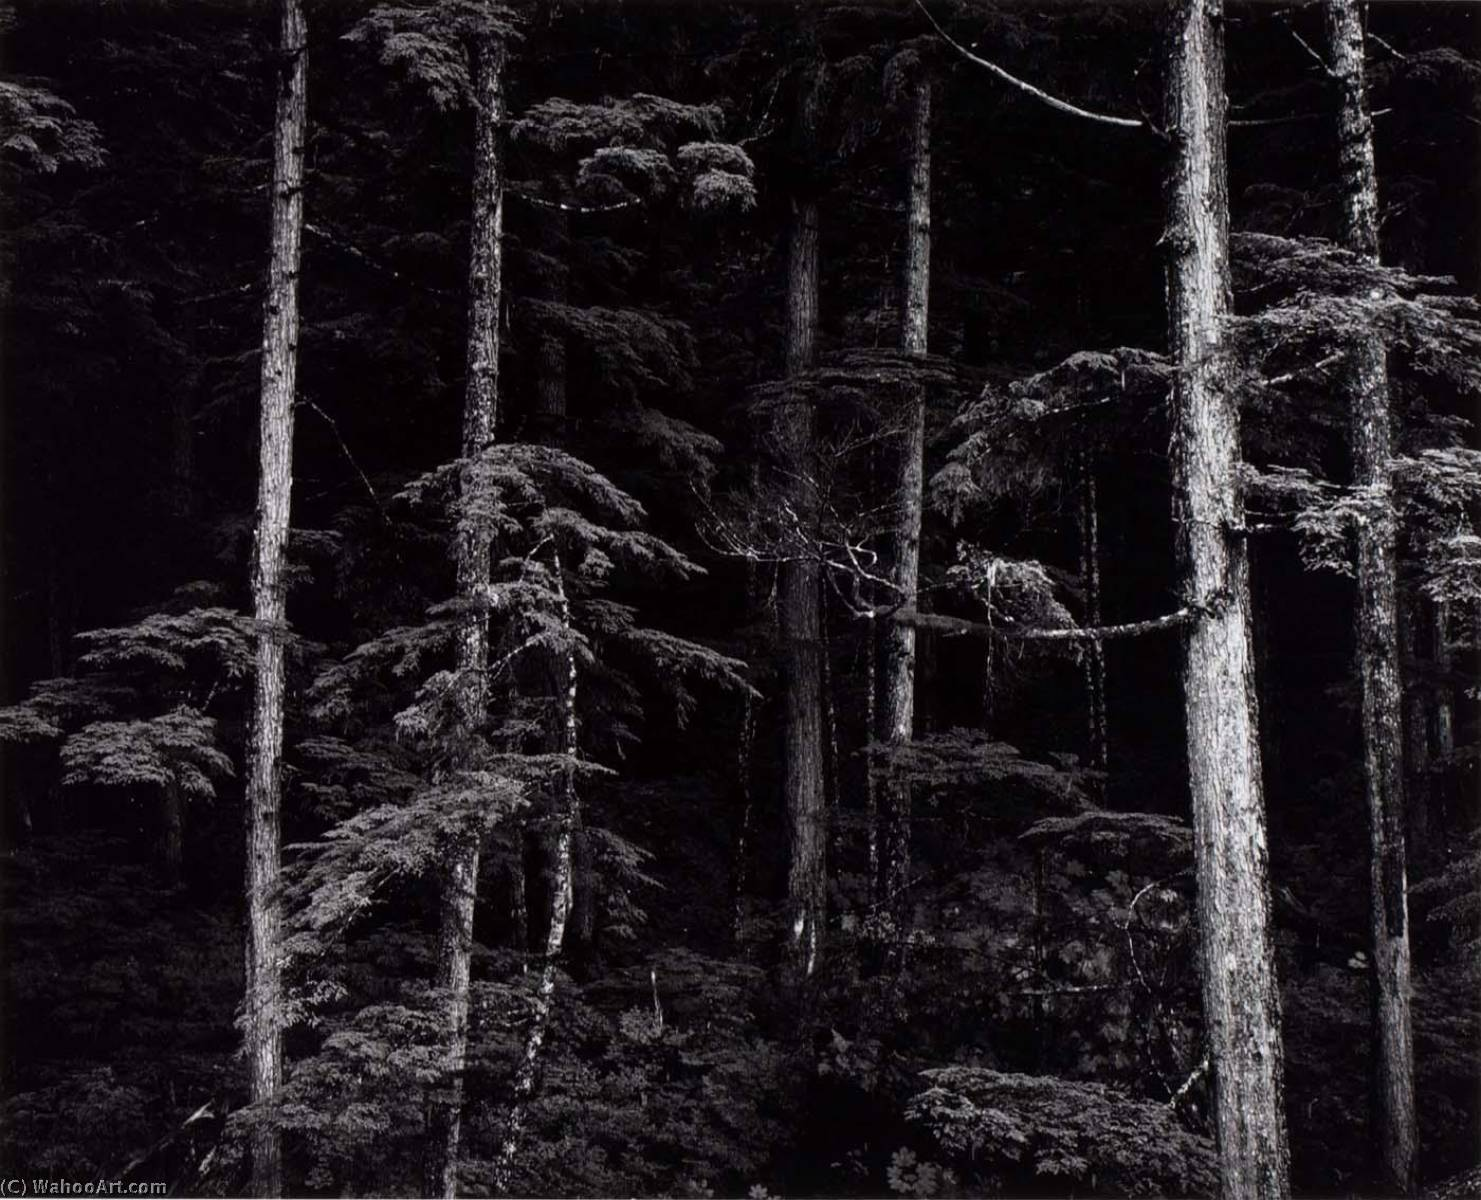 Untitled (Pines, Trunks), 1973 by Brett Weston (1911-1993, United States) |  | WahooArt.com